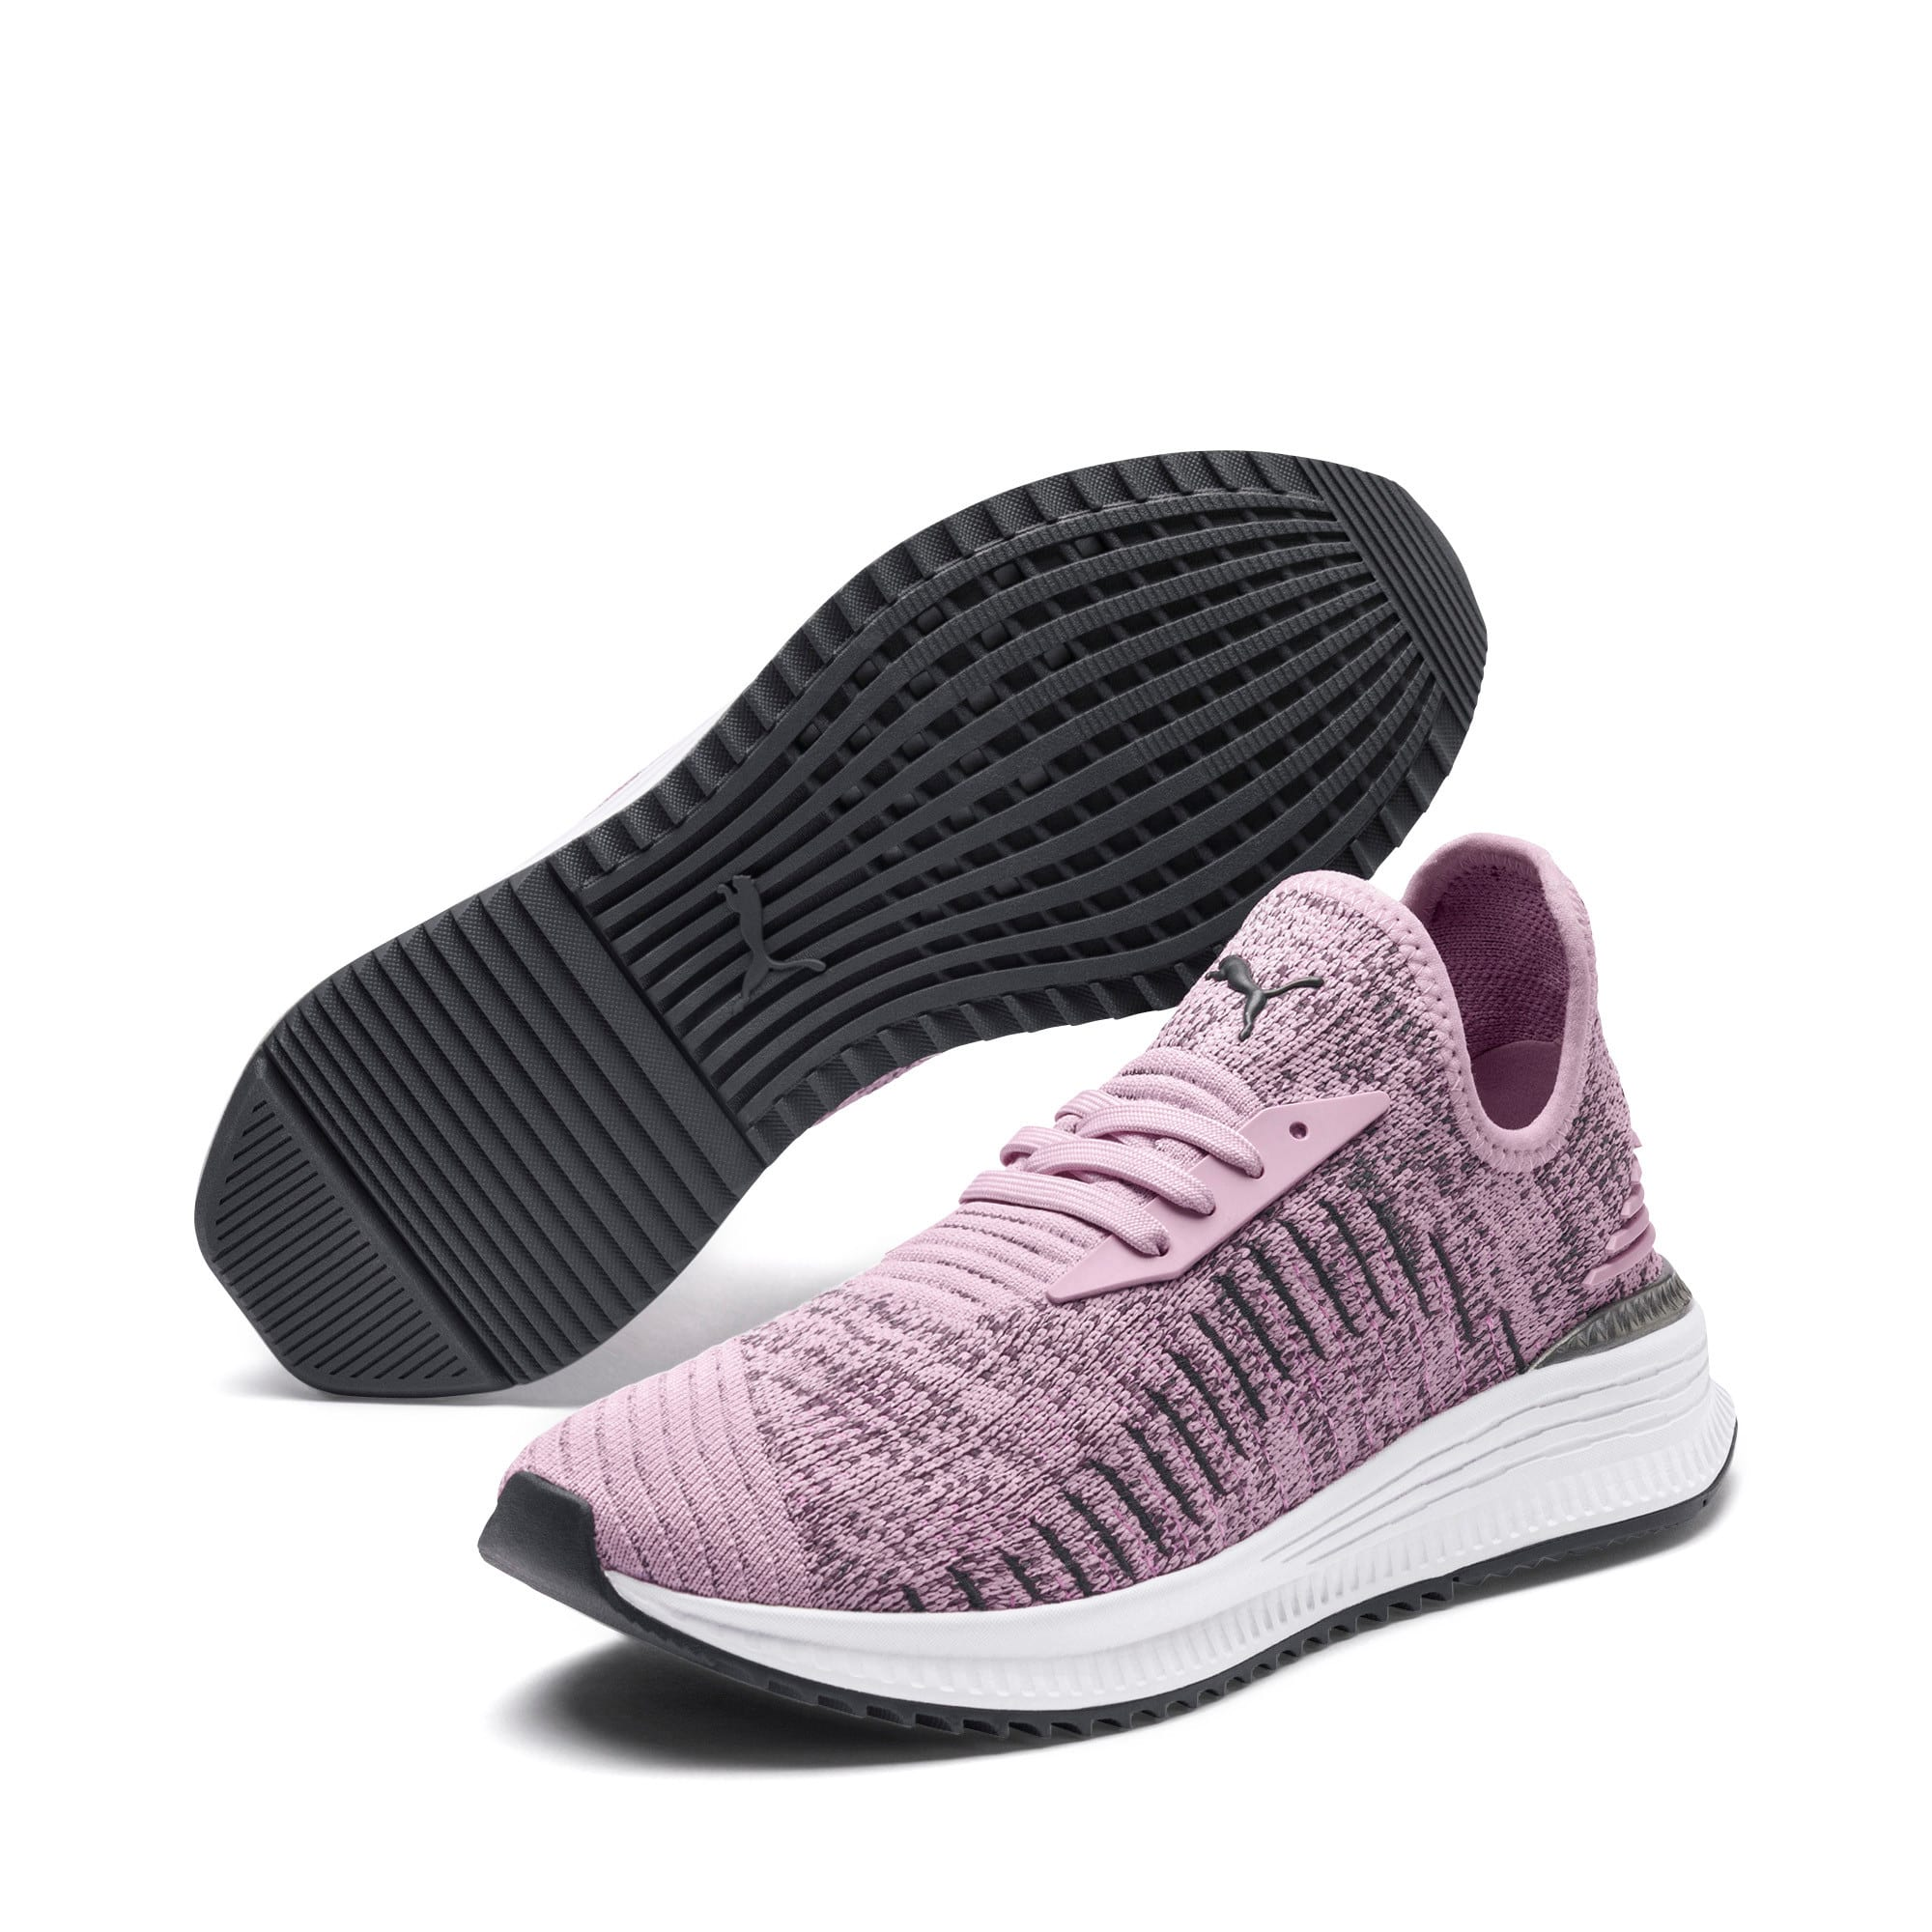 Thumbnail 2 of AVID evoKNIT Mosaic Women's Sneakers, WOrchid-IGate-Orchid, medium